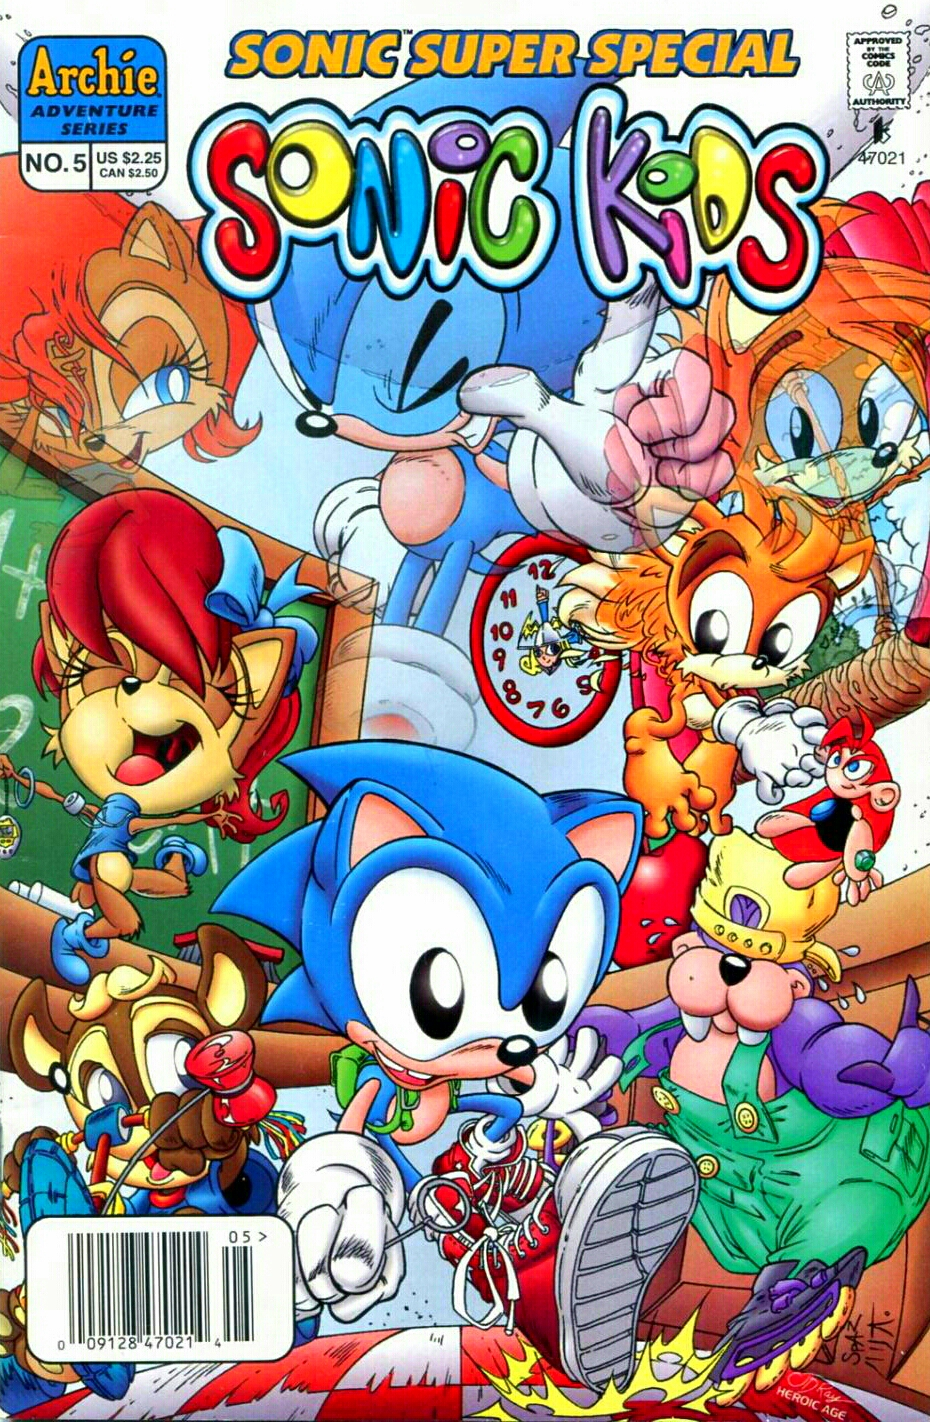 Archie Sonic Super Special Issue 5